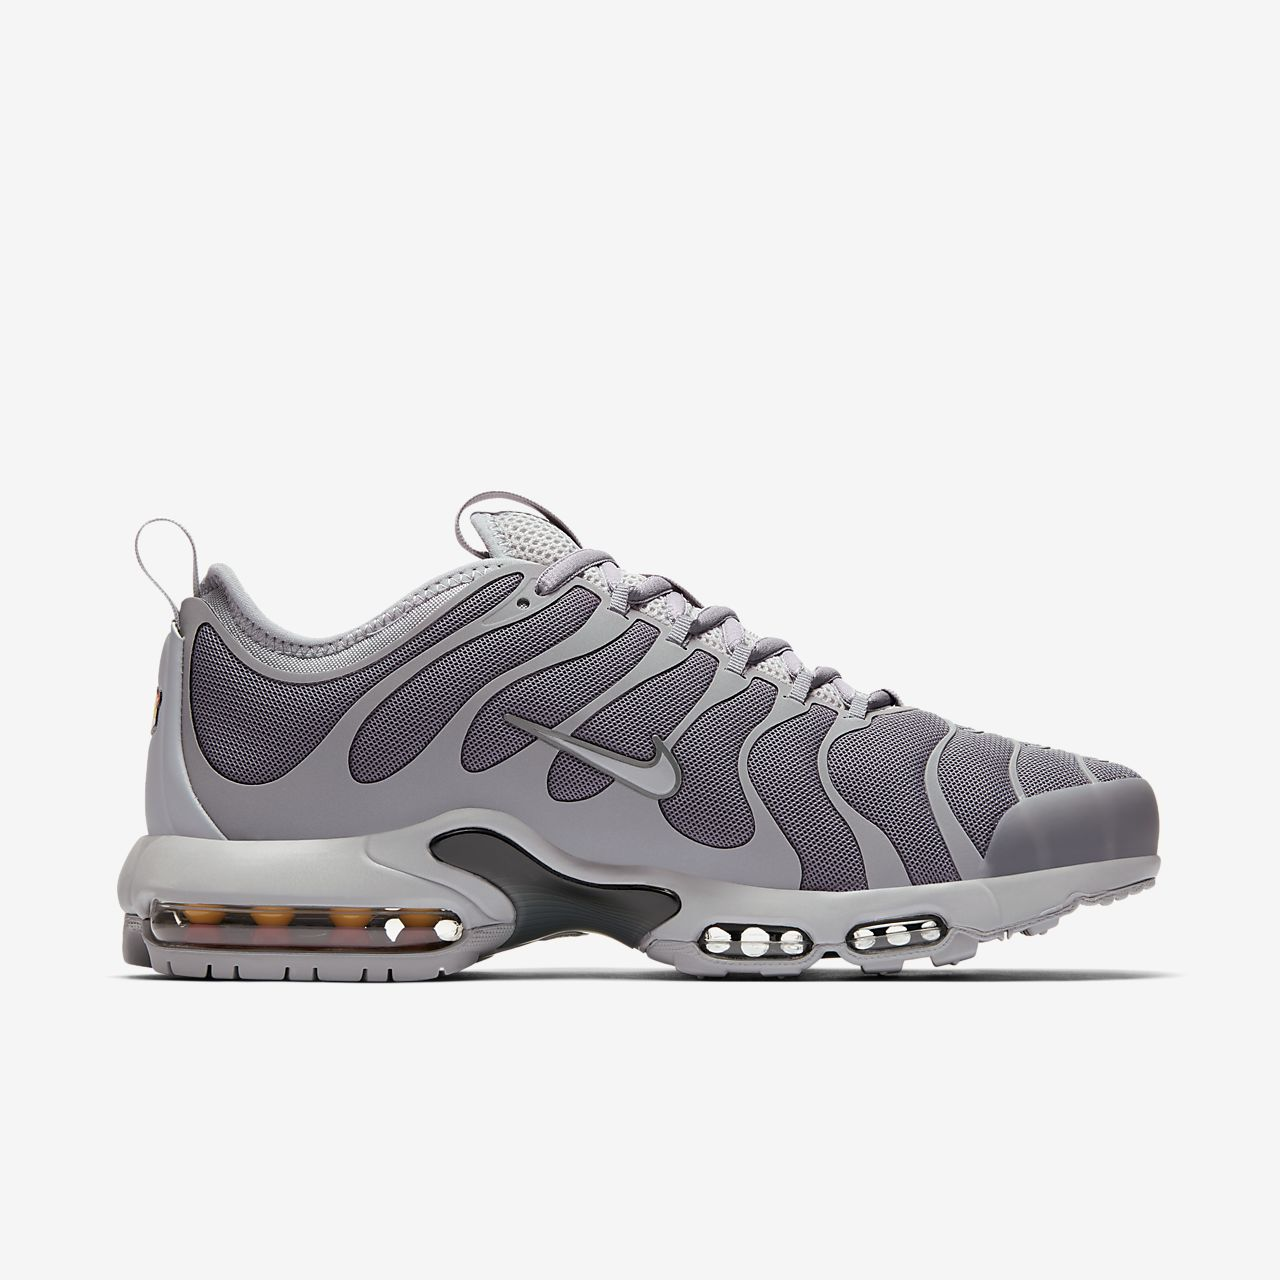 Low Resolution Nike Air Max Plus Tn Ultra Men's Shoe Nike Air Max Plus Tn  Ultra Men's Shoe